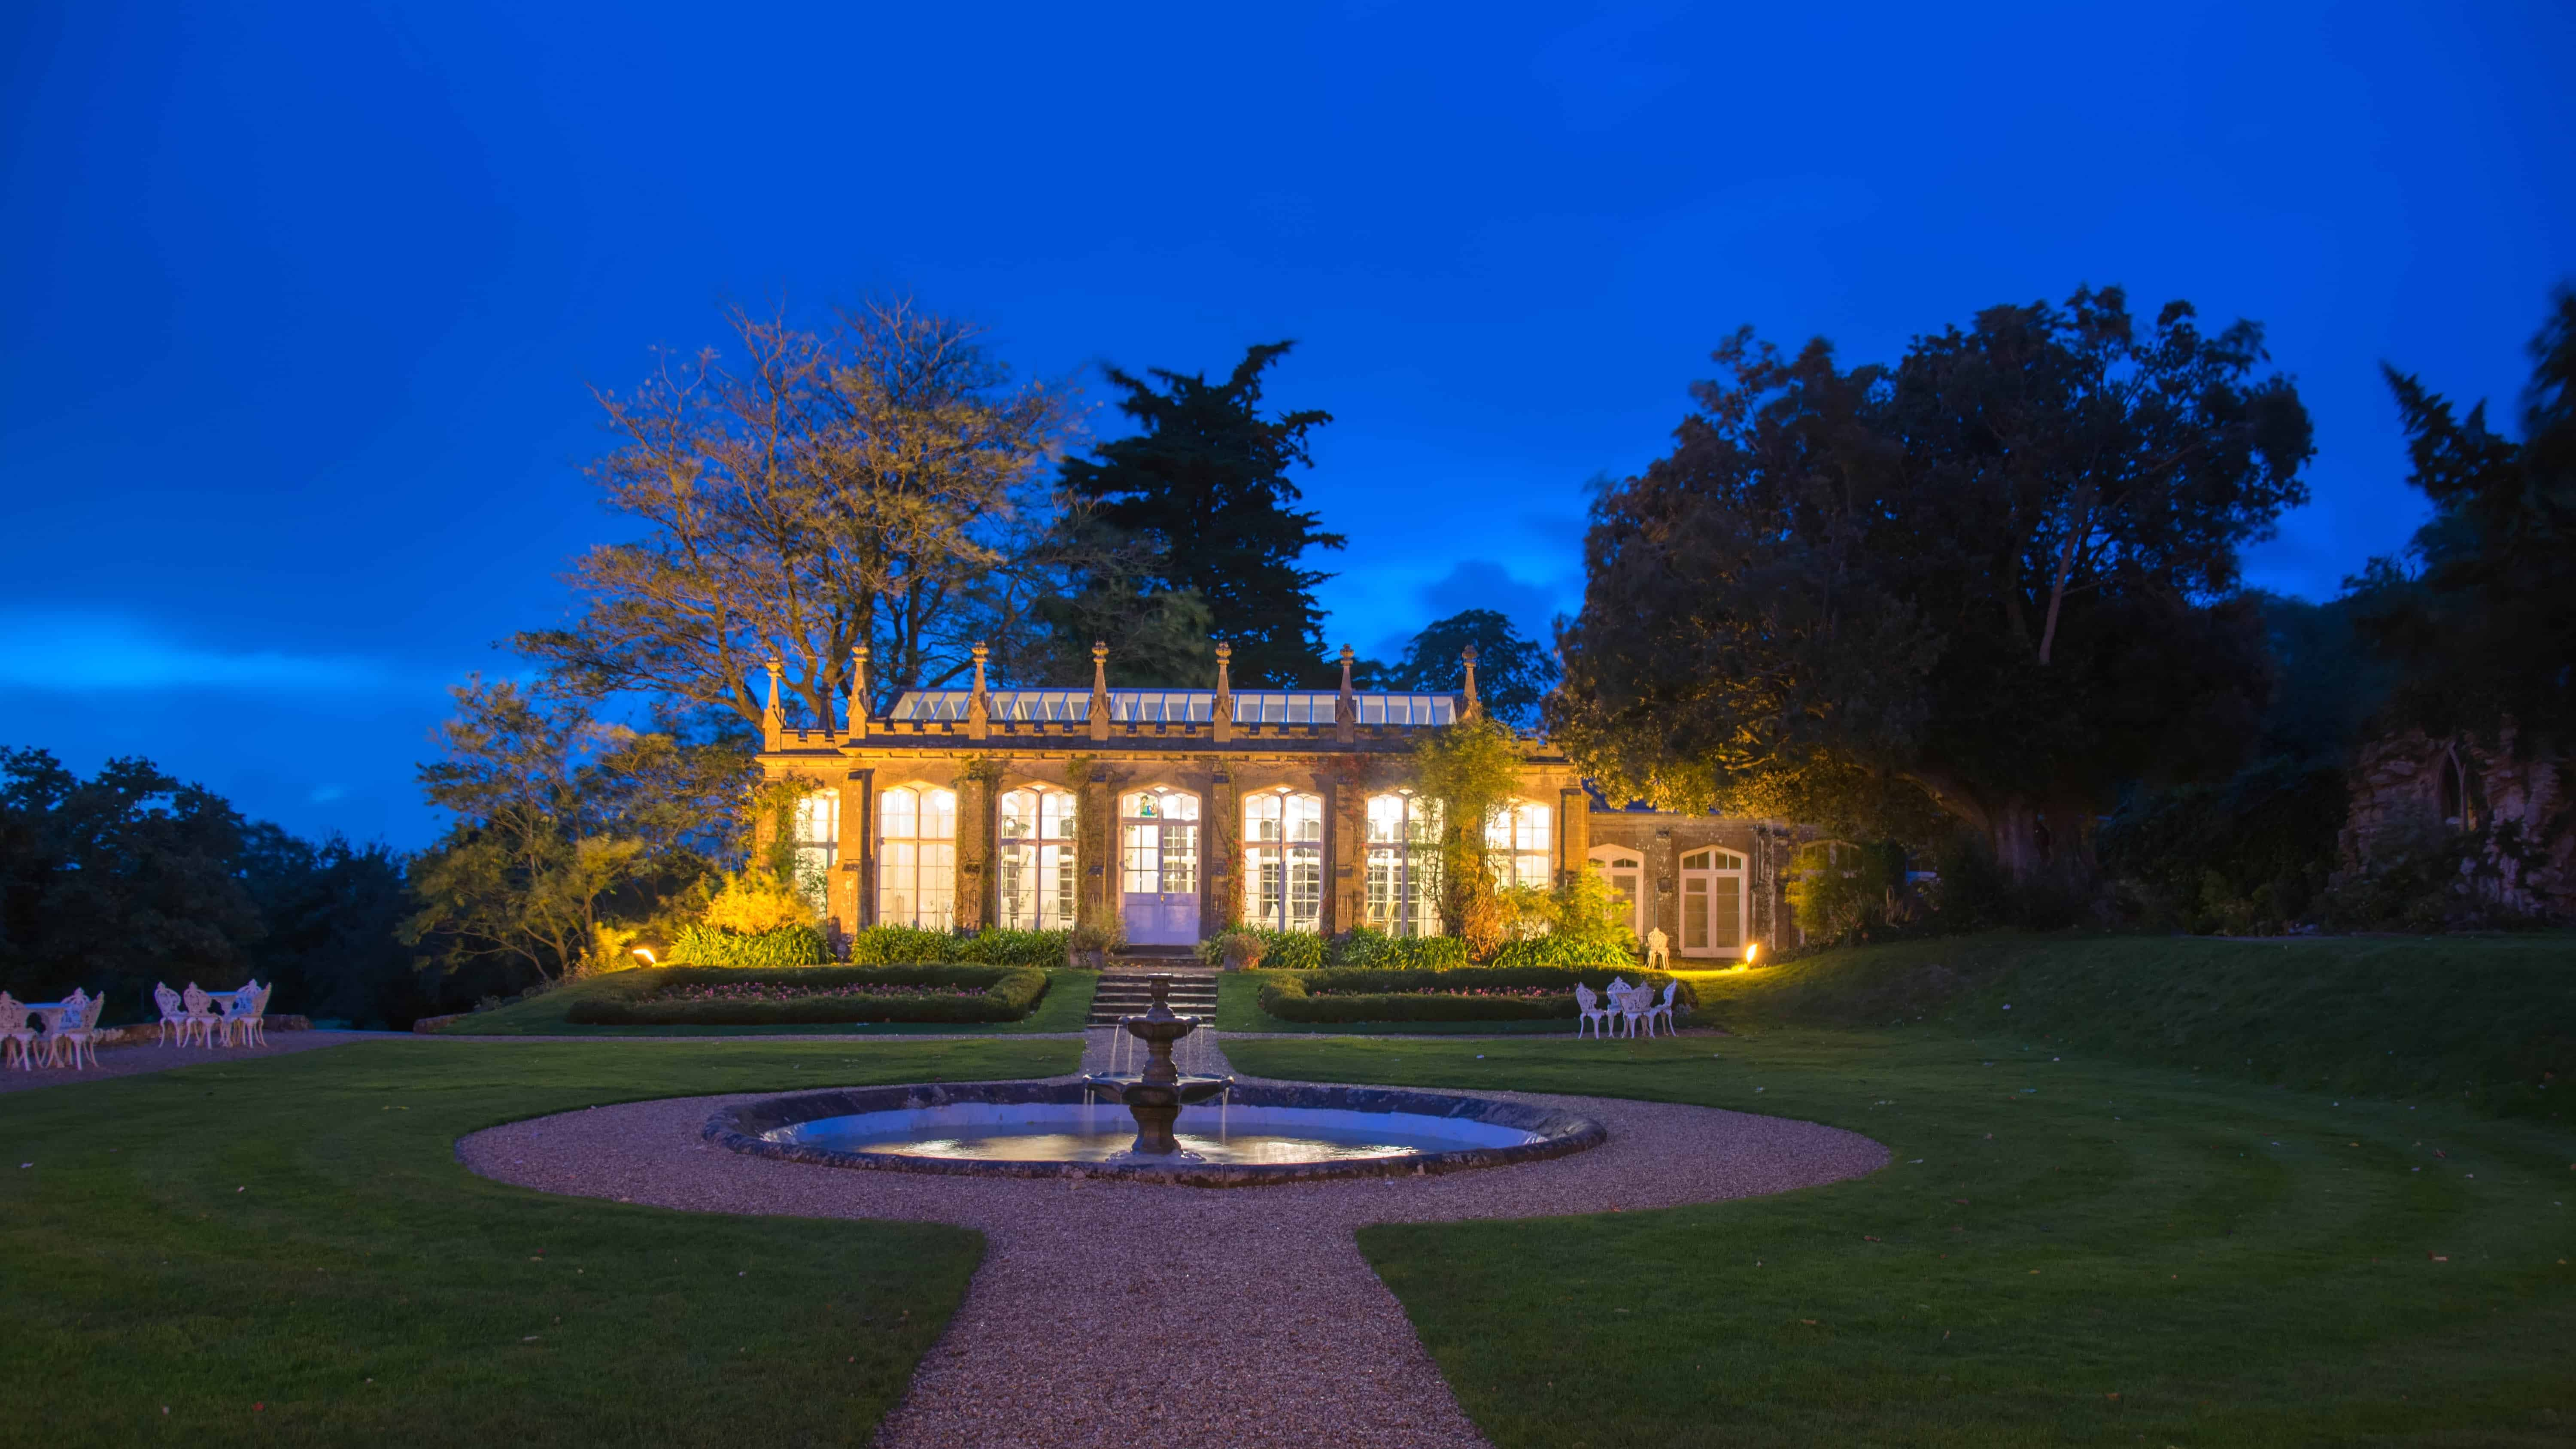 St Audries Park Candlelit Ball - The Orangery